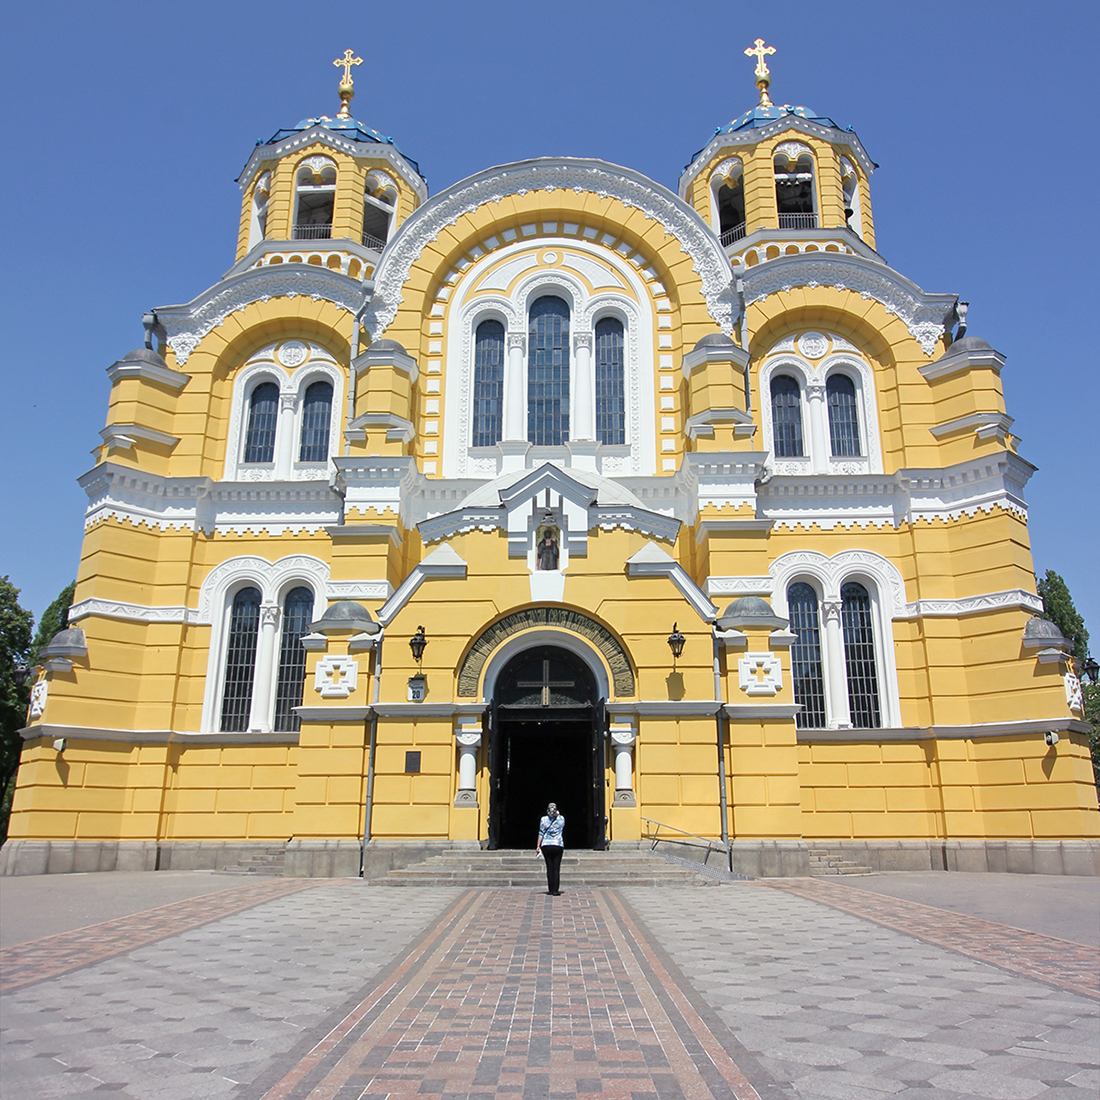 The bright yellow facade of Volodymr's Cathedral in Kyiv, Ukraine